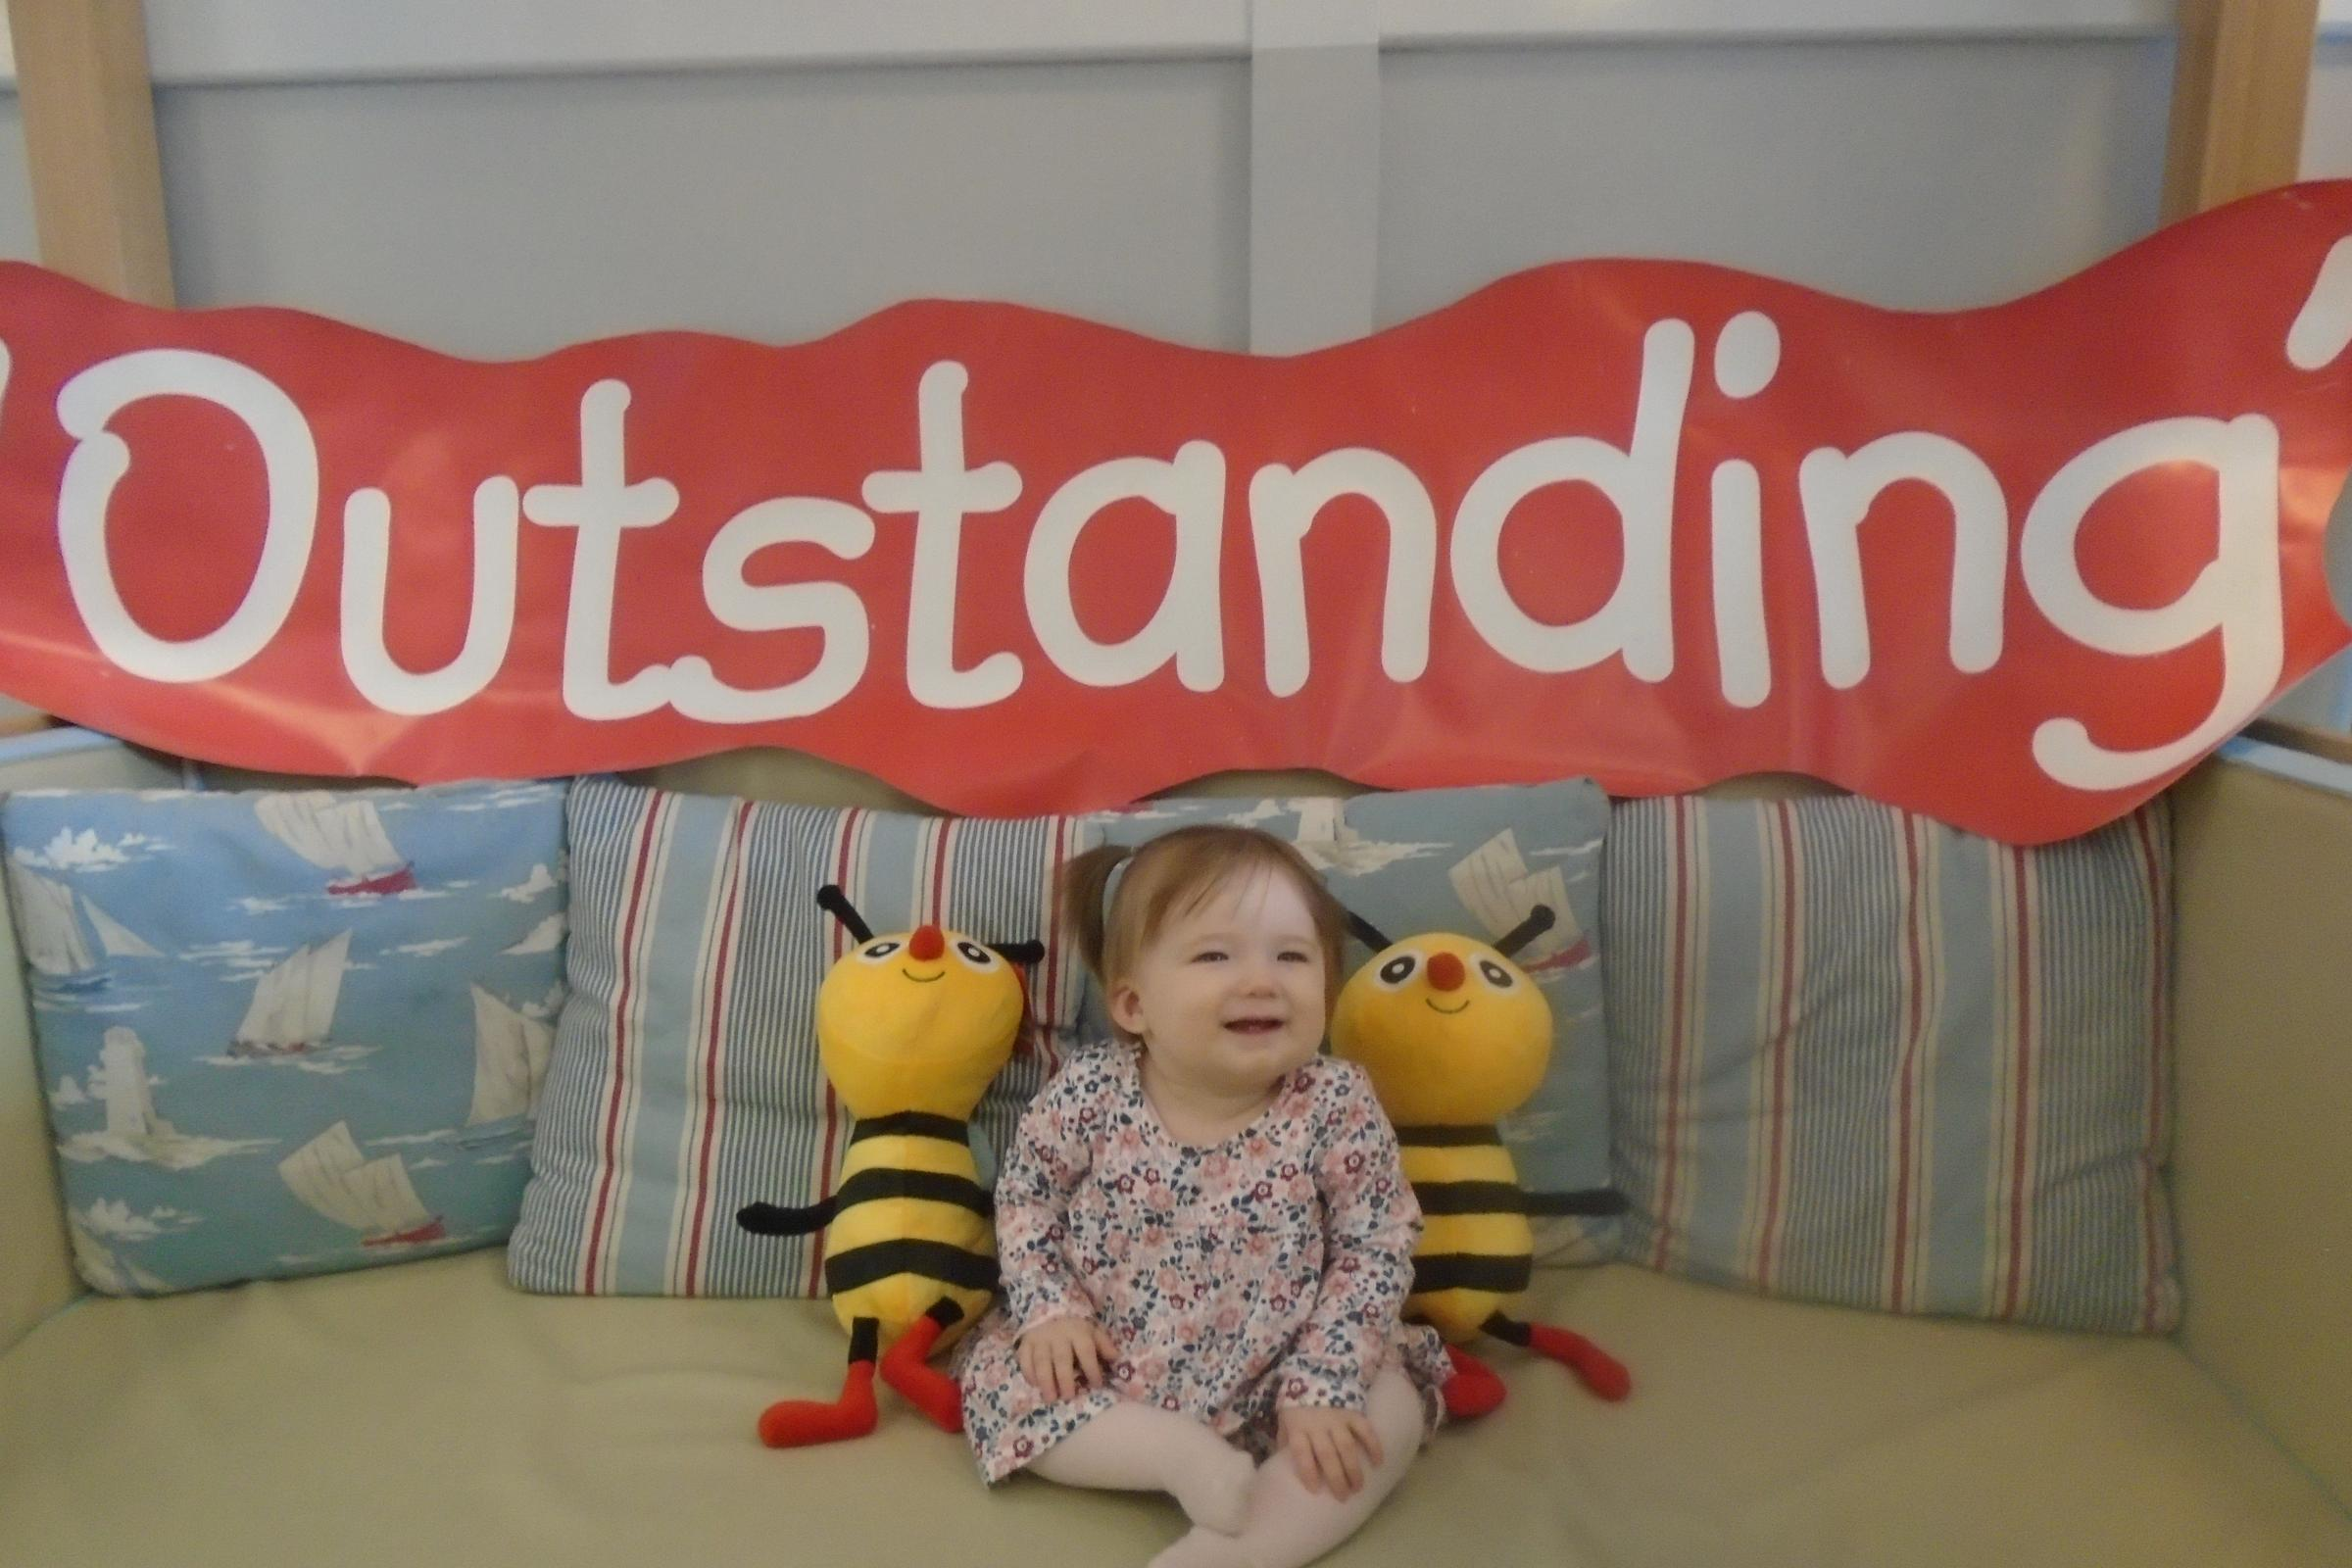 Busy Bees nursery in York gets an 'outstanding' inspection rating